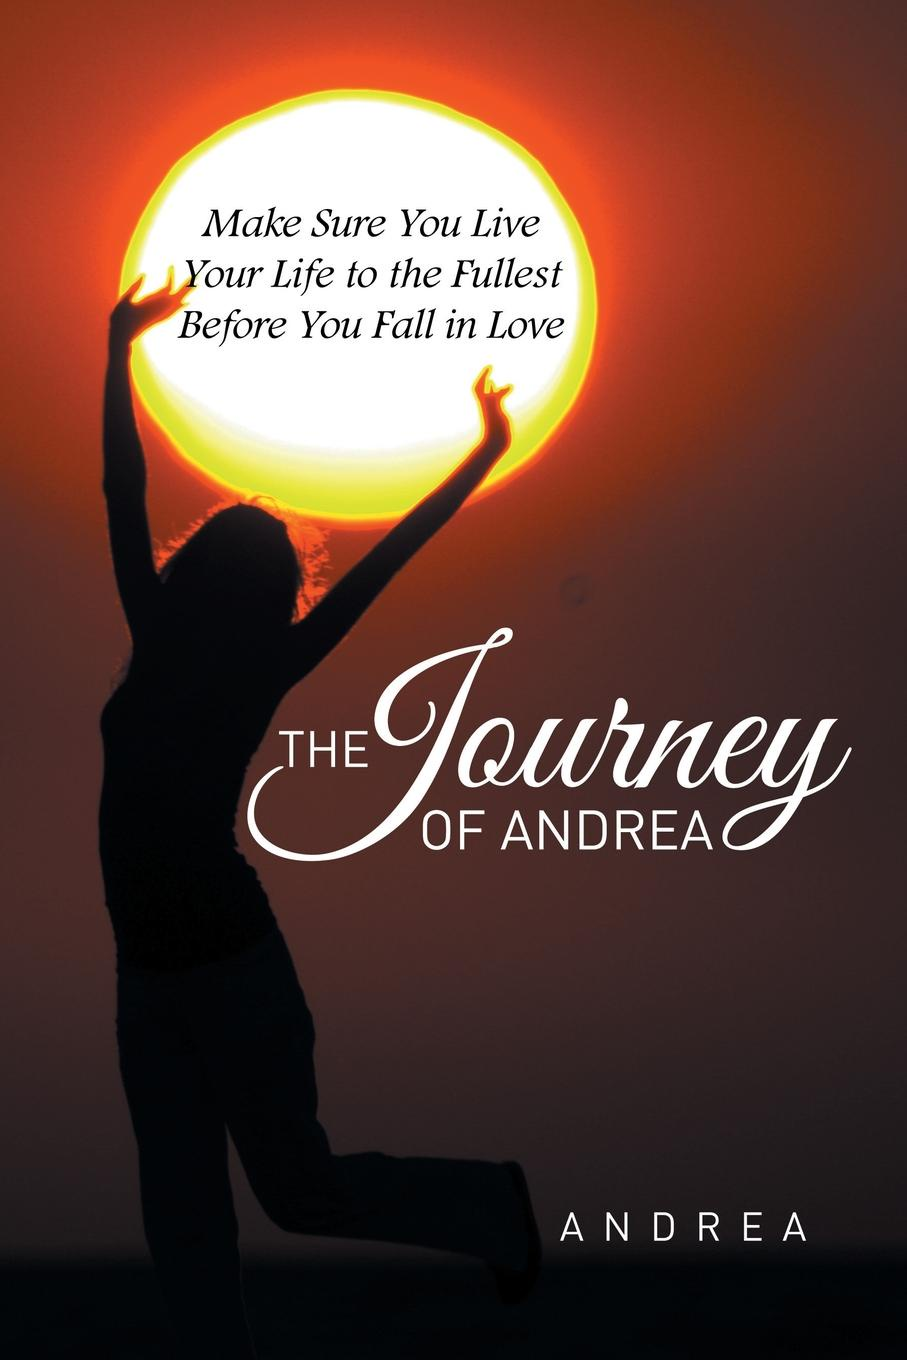 Andrea The Journey of Andrea. Make Sure You Live Your Life to the Fullest Before You Fall in Love